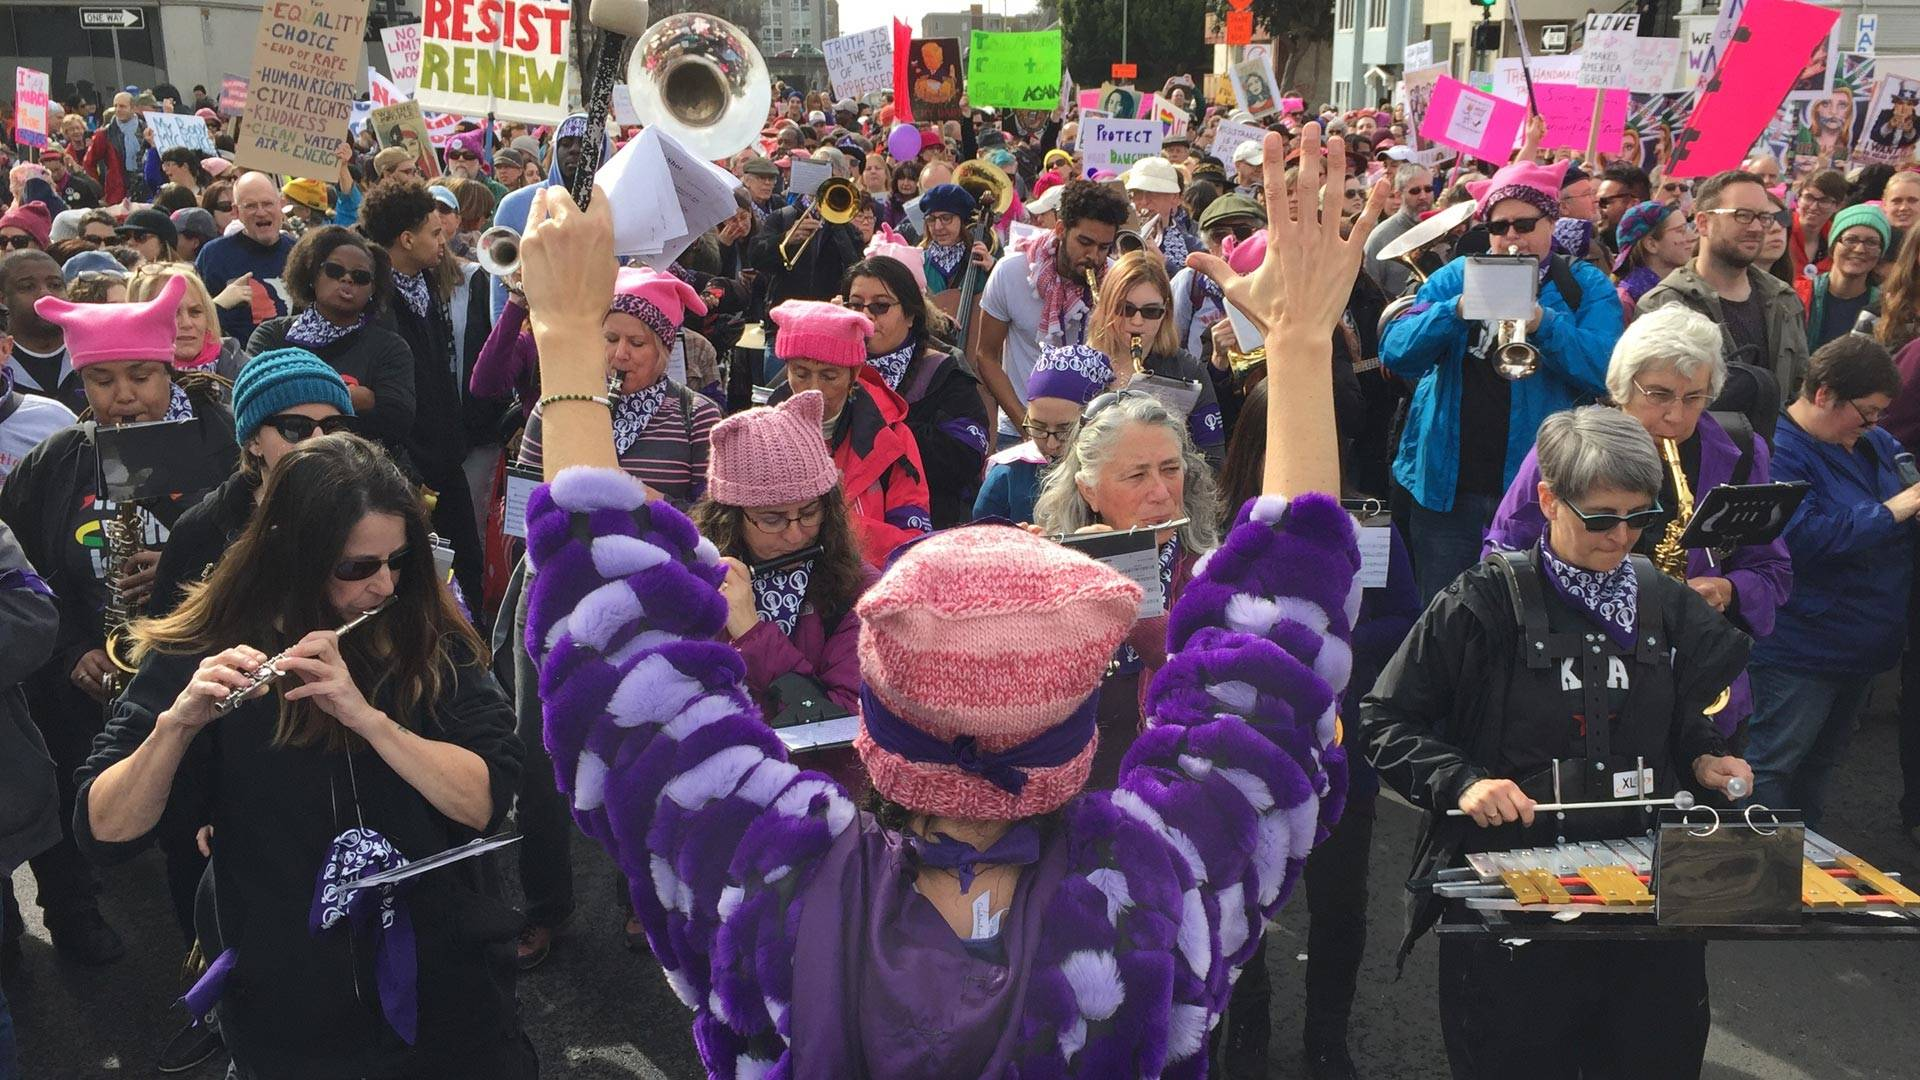 The Nasty Woman Band keeps spirits up with music at the Women's March in Oakland, Jan. 21, 2017. Gabe Meline/KQED